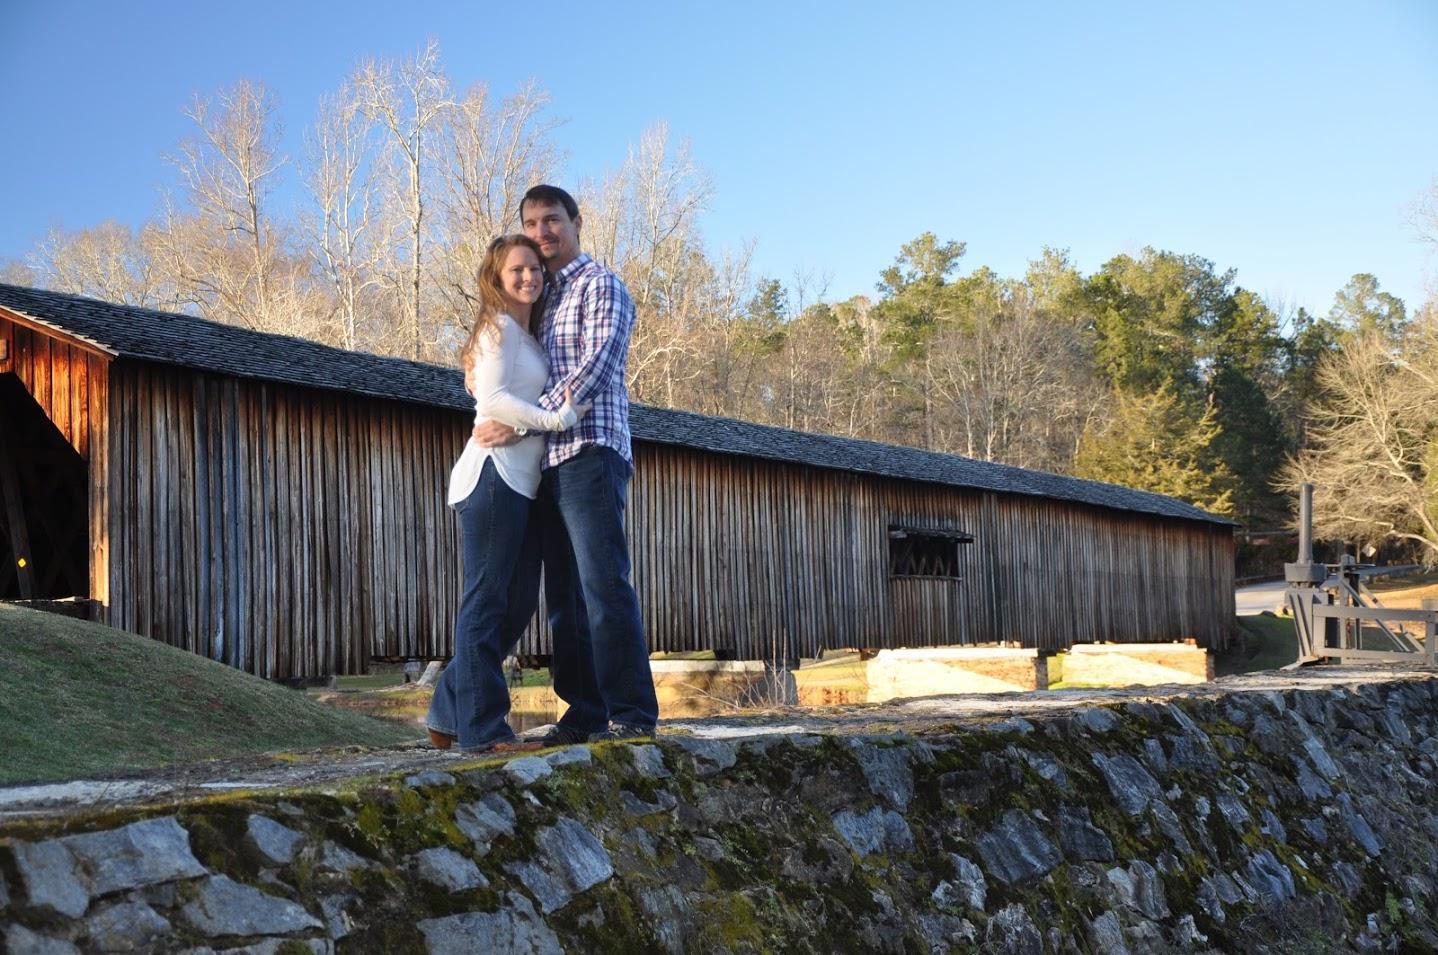 Dr. Parham and then fiance Cory, March 2016